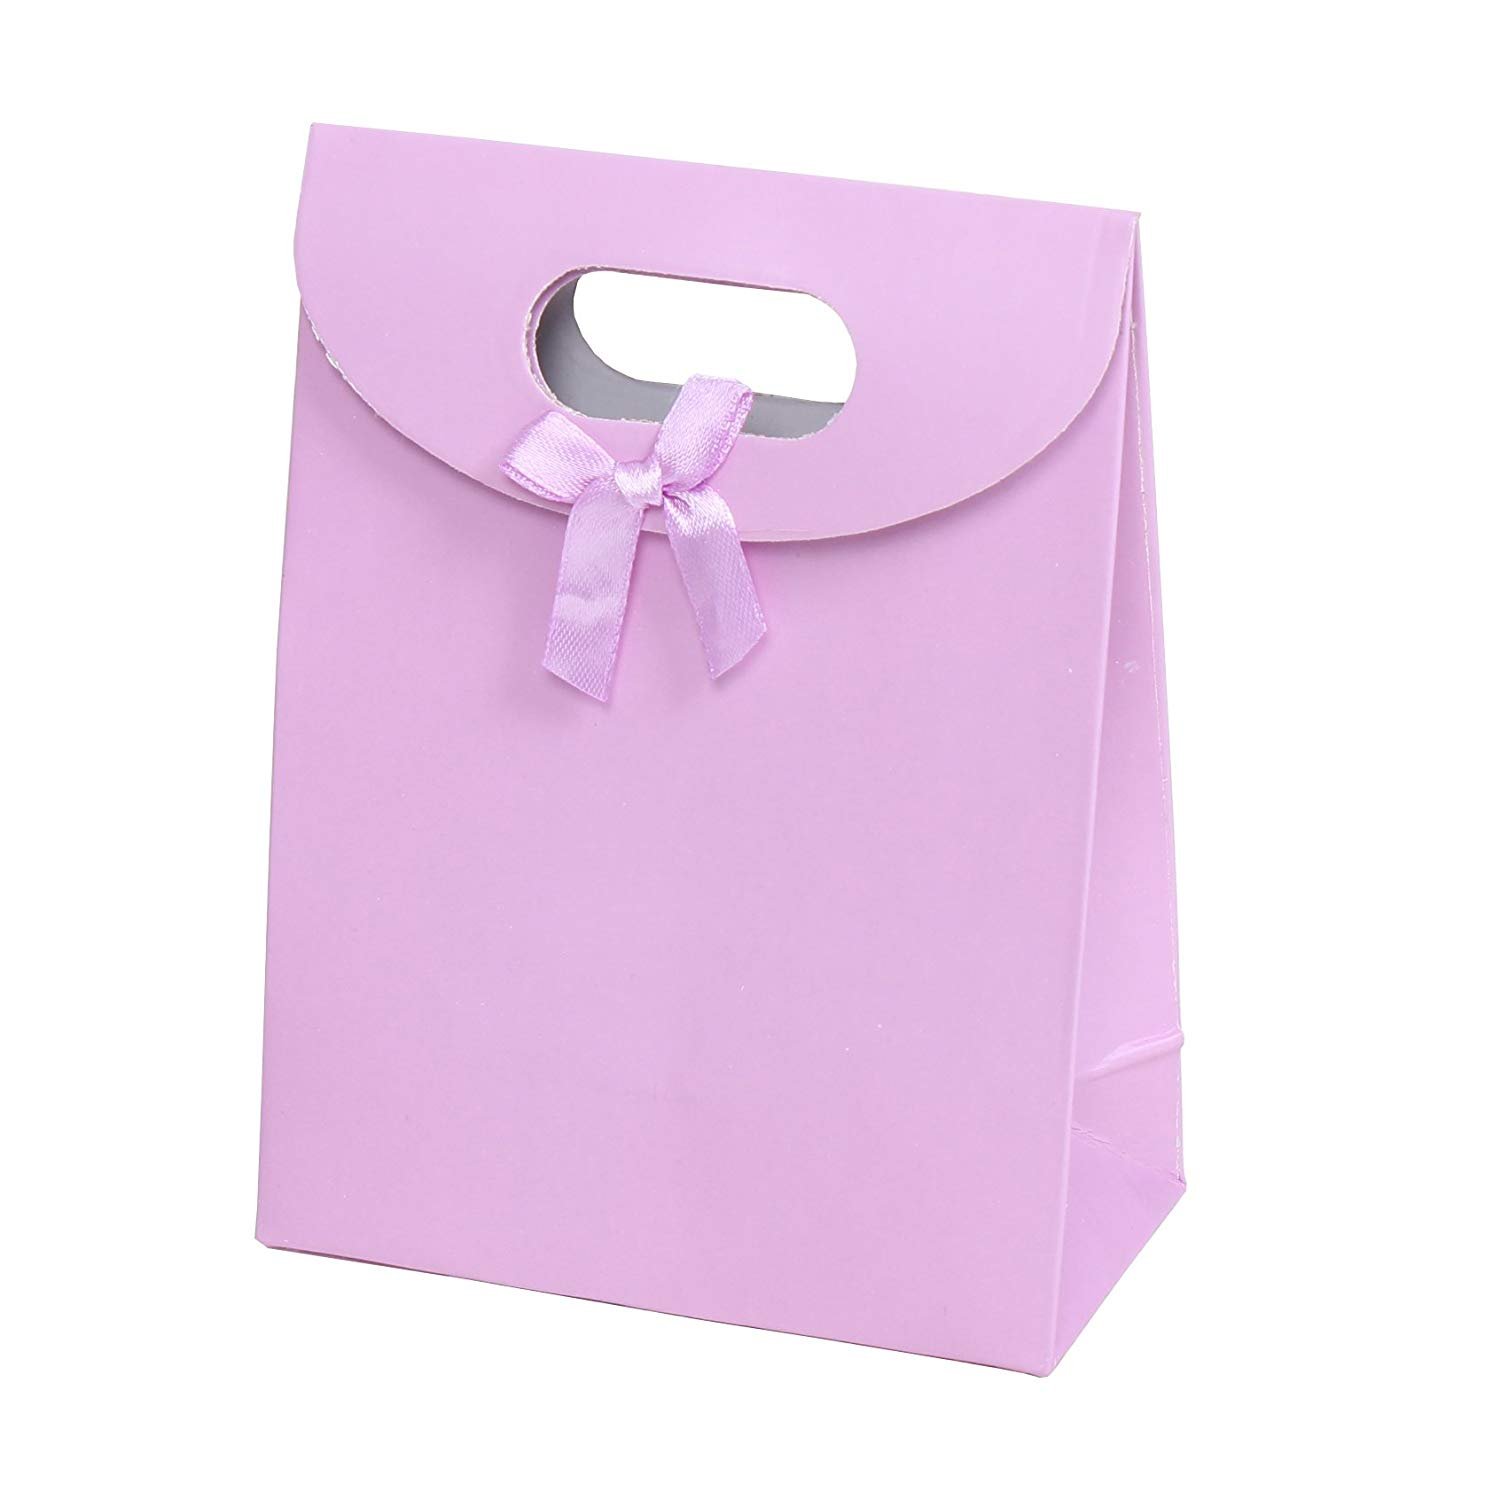 8.5 x 4 x 12 20 Gold Twist Twisted Handle Paper Carrier Bags 220mm x 100mm x 310mm